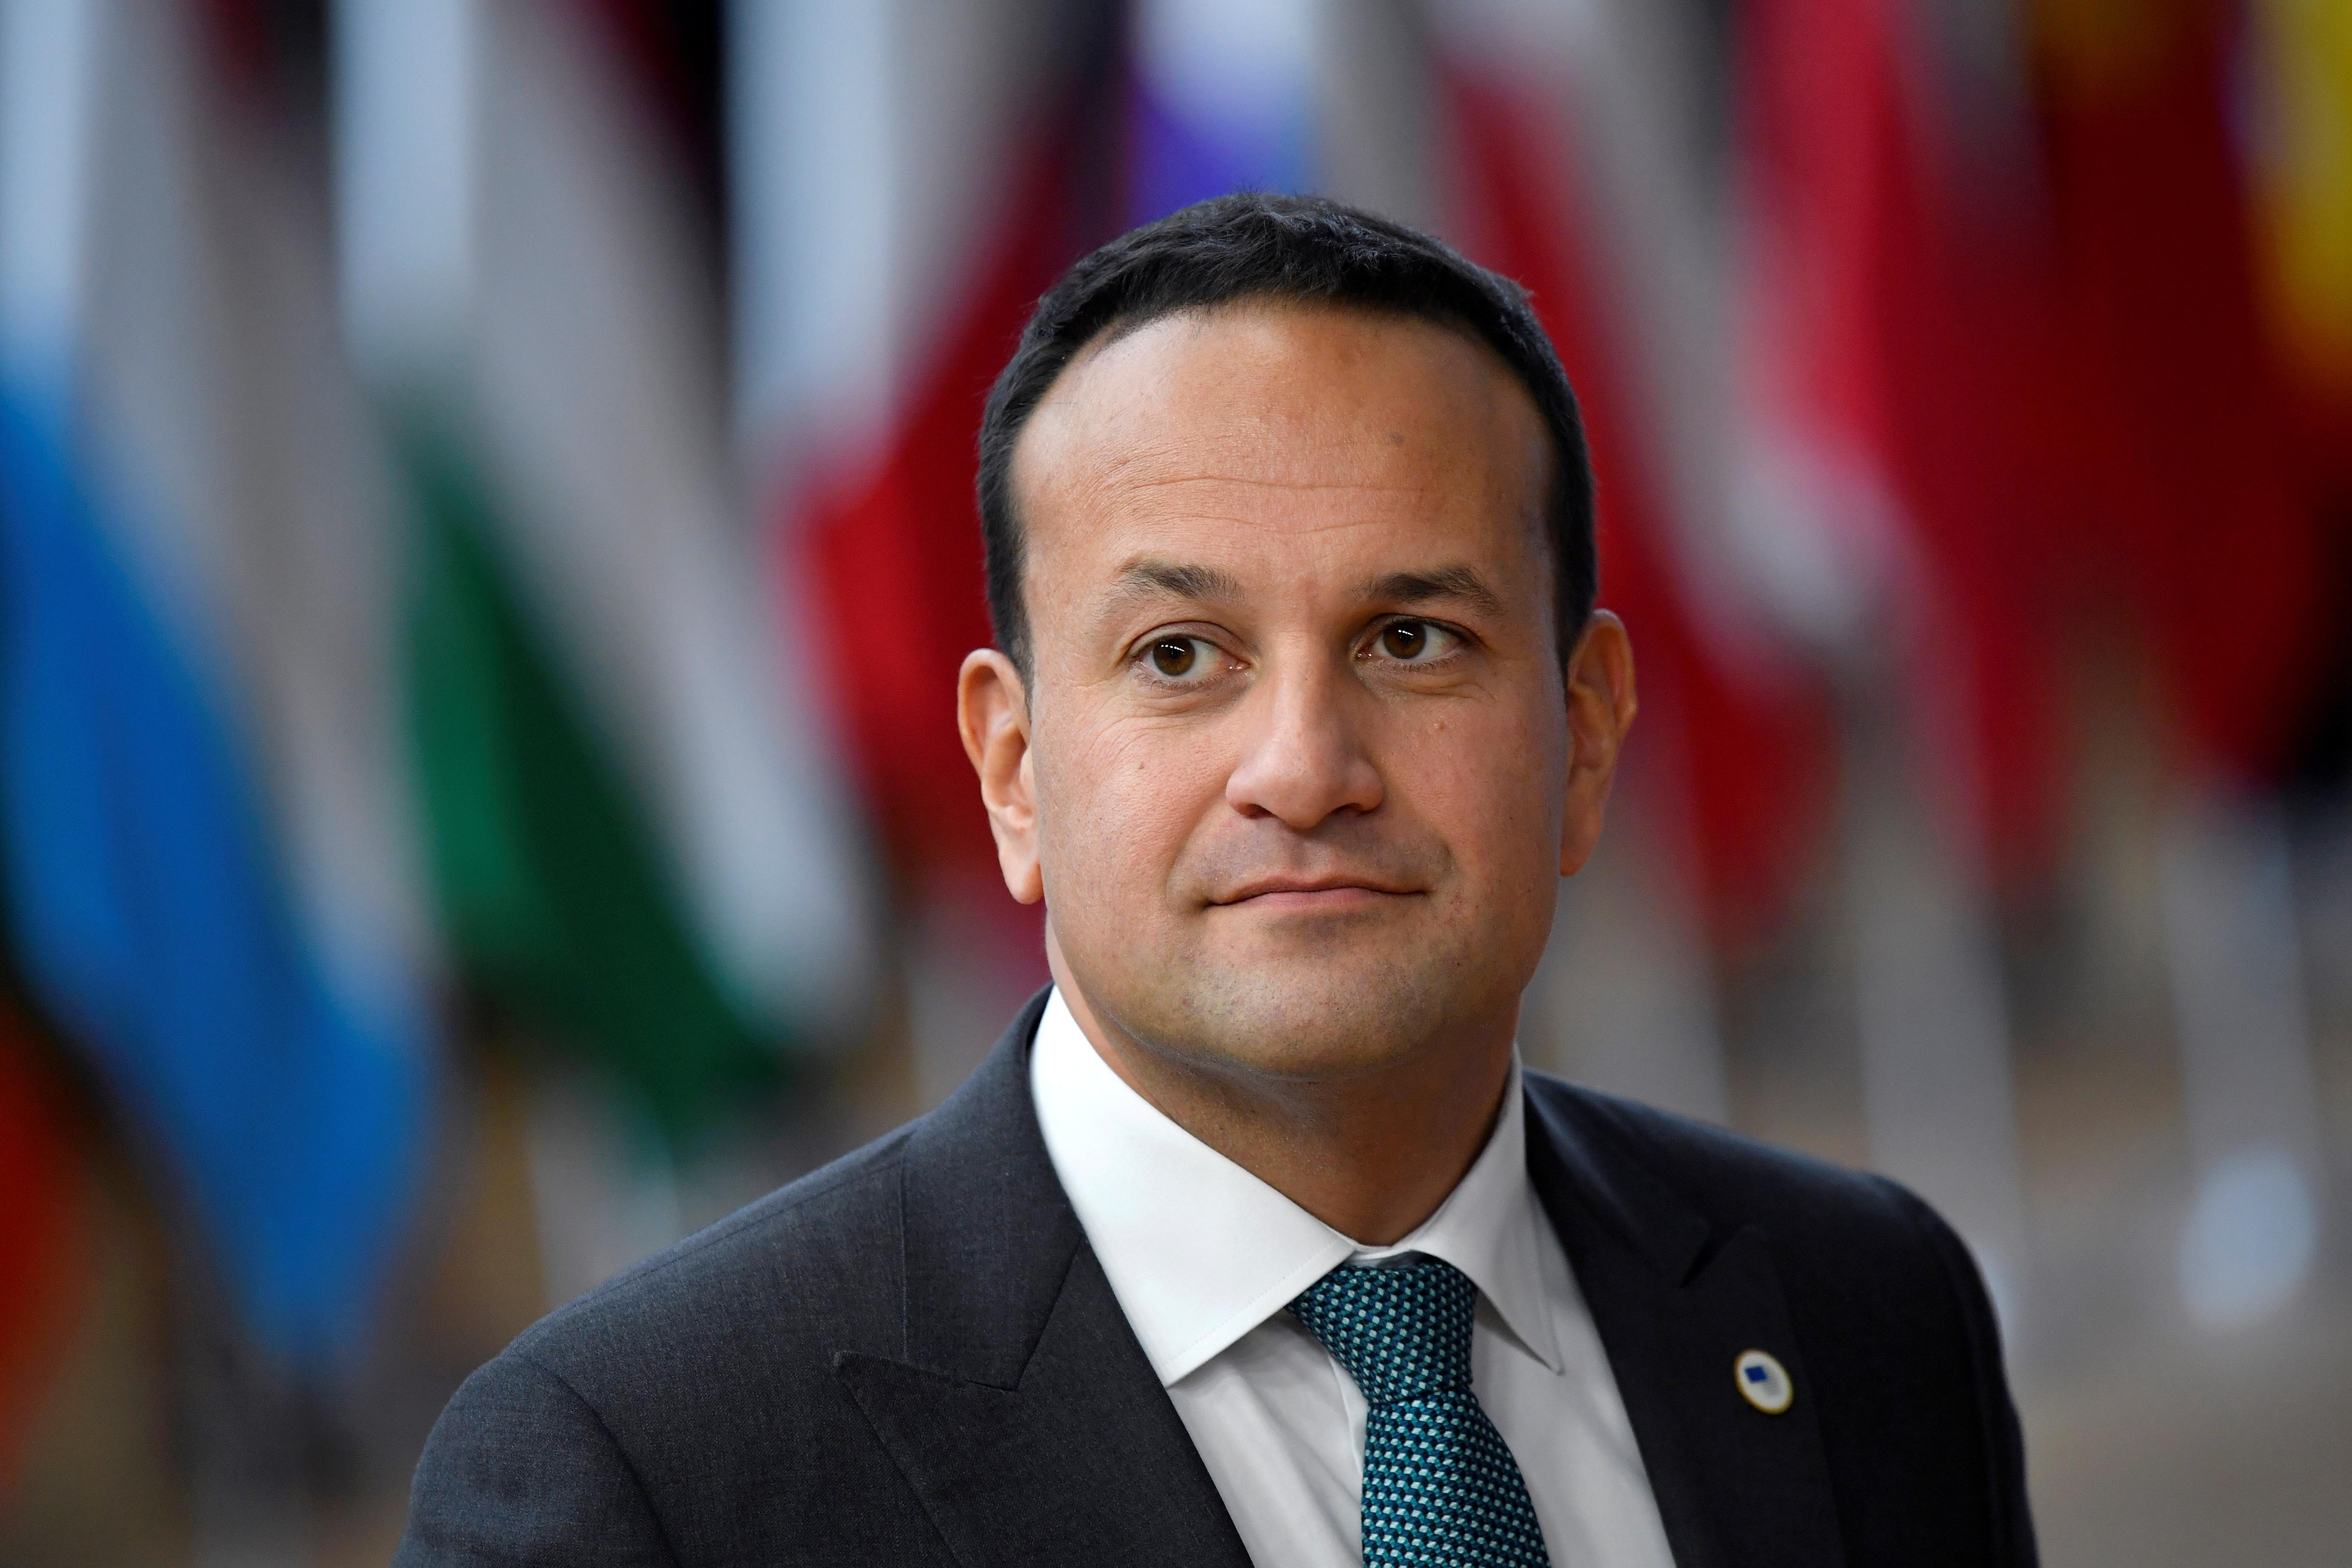 Irish PM's party primed for snap election if Brexit sealed: party...